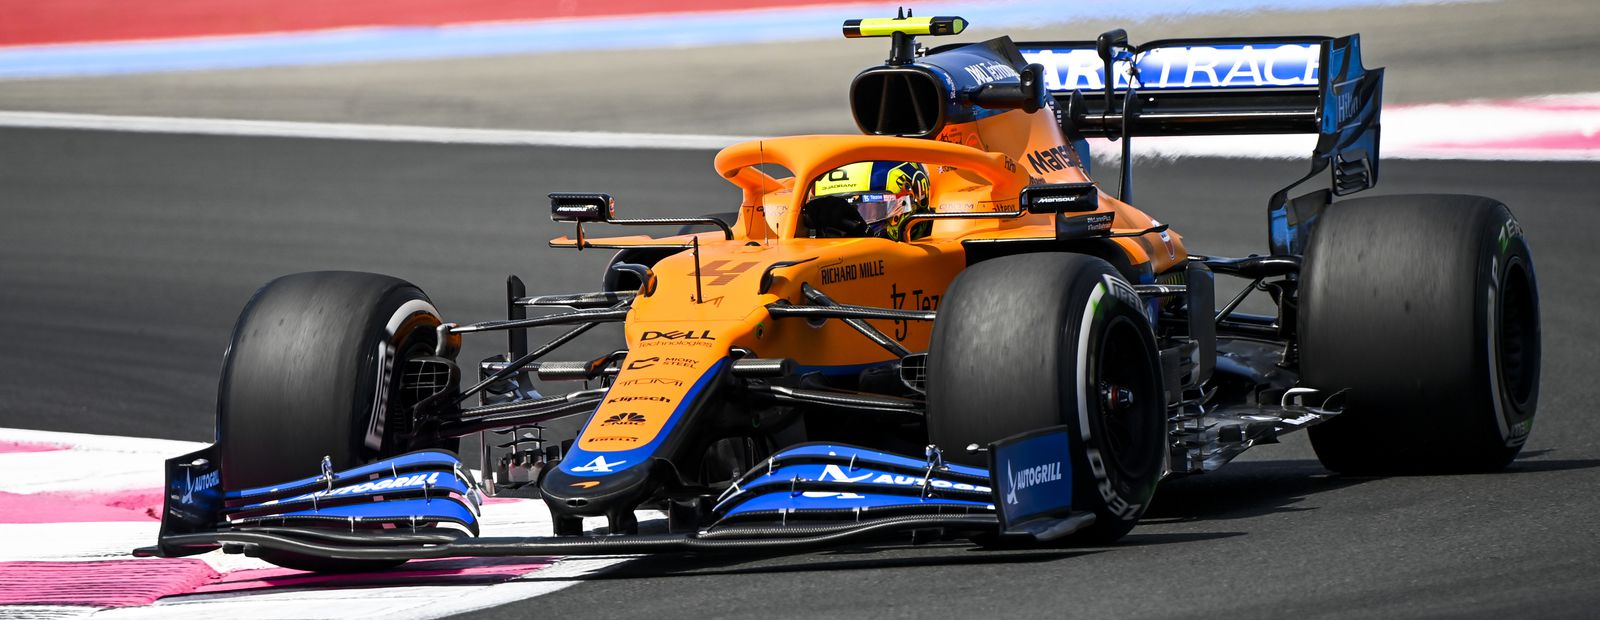 2021 French Grand Prix – Free Practice